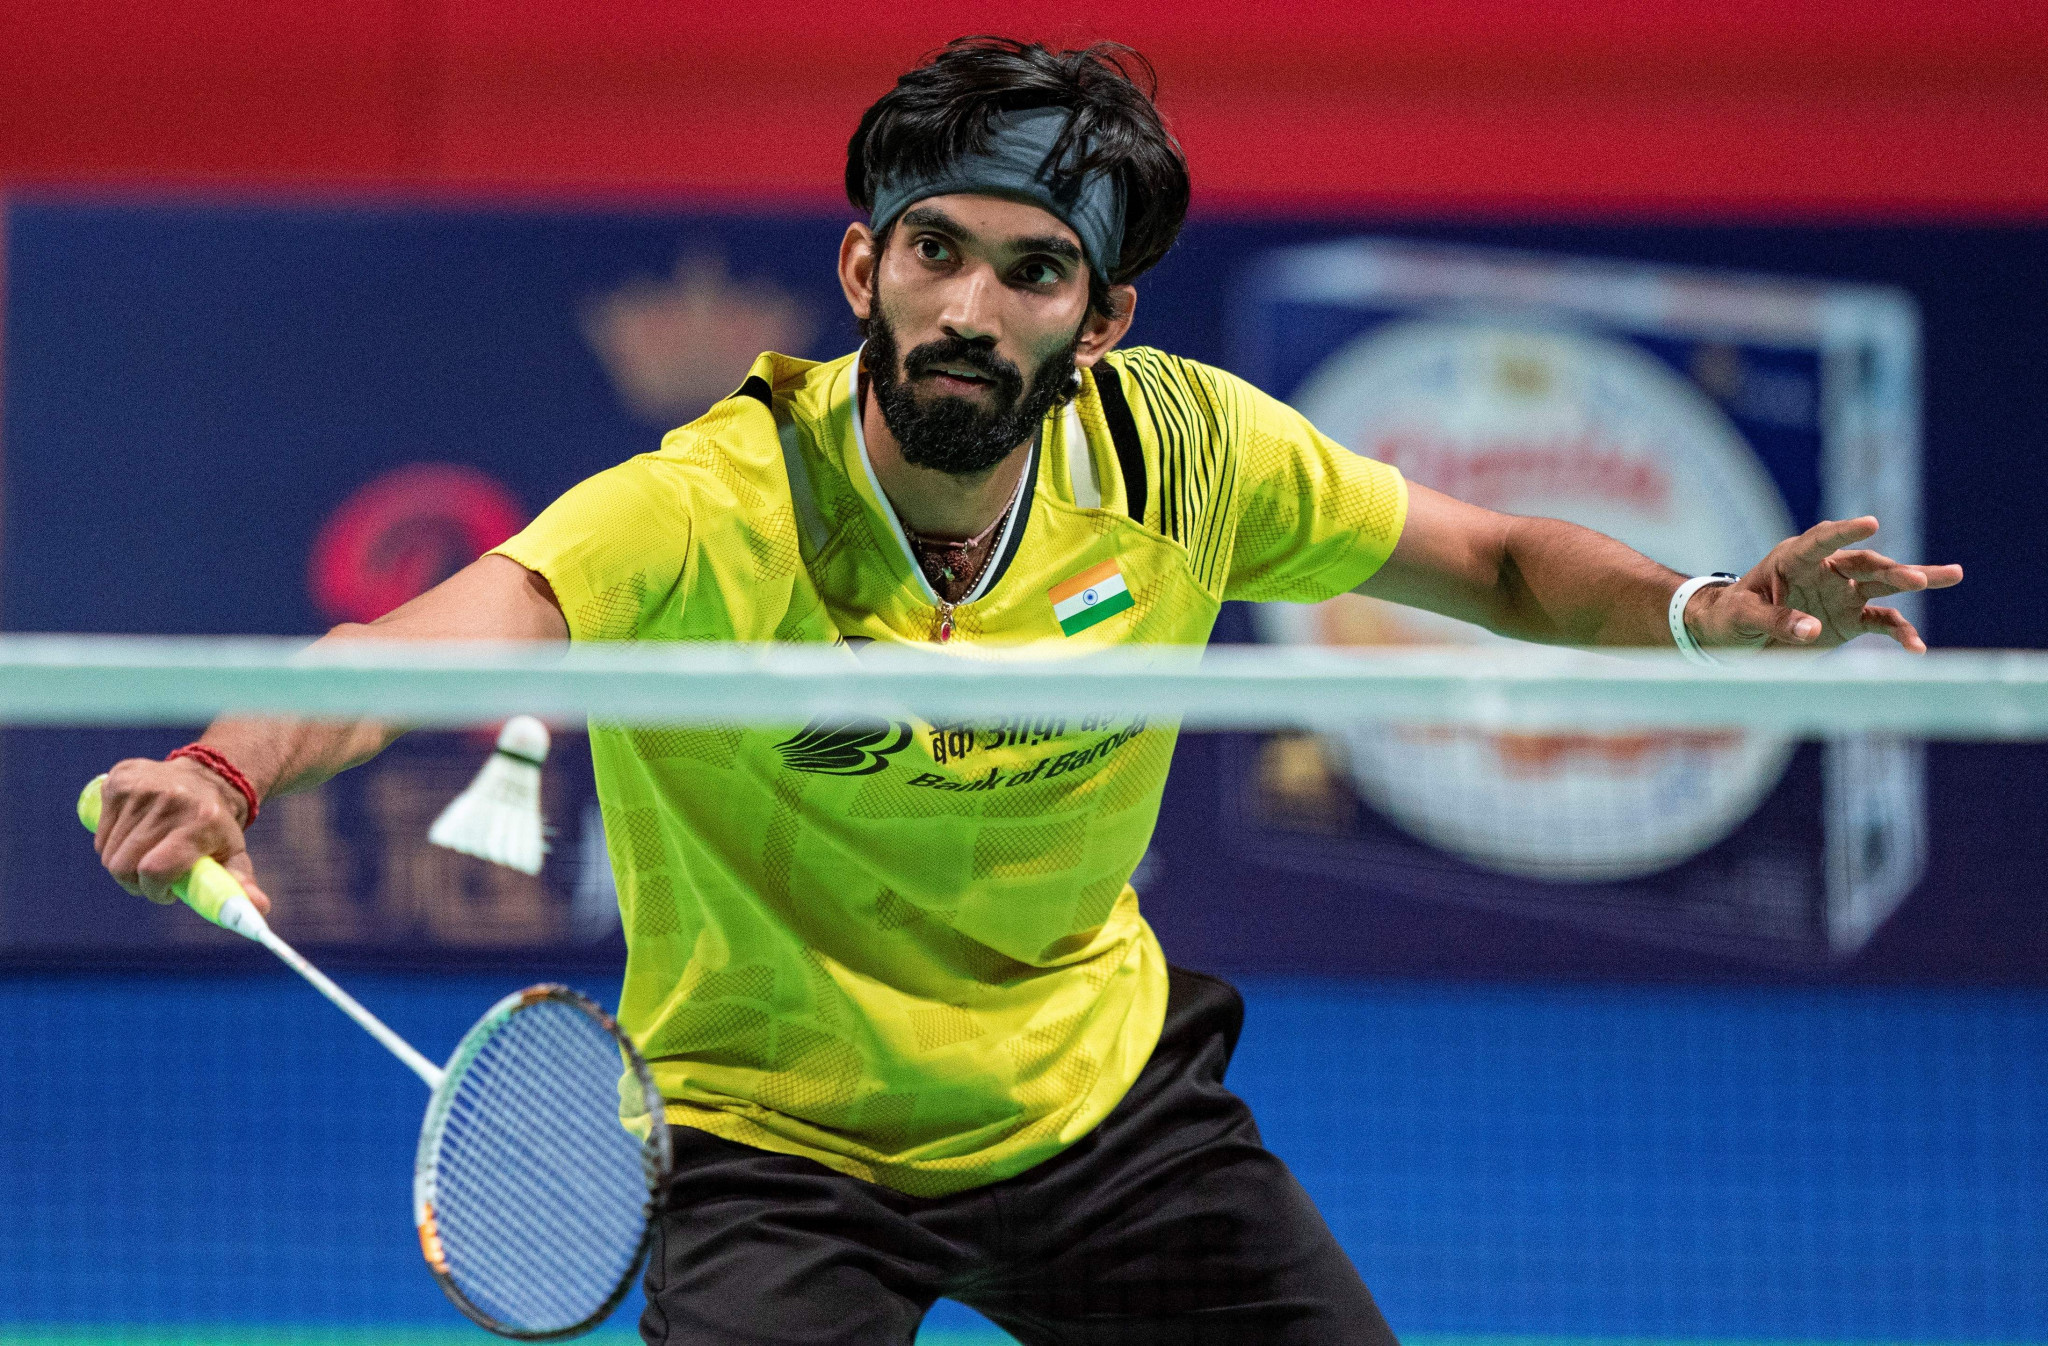 Eighth seed Srikanth Kidambi was one of the biggest casualties on day one of the All England Open Badminton Championships in Birmingham ©Getty Images